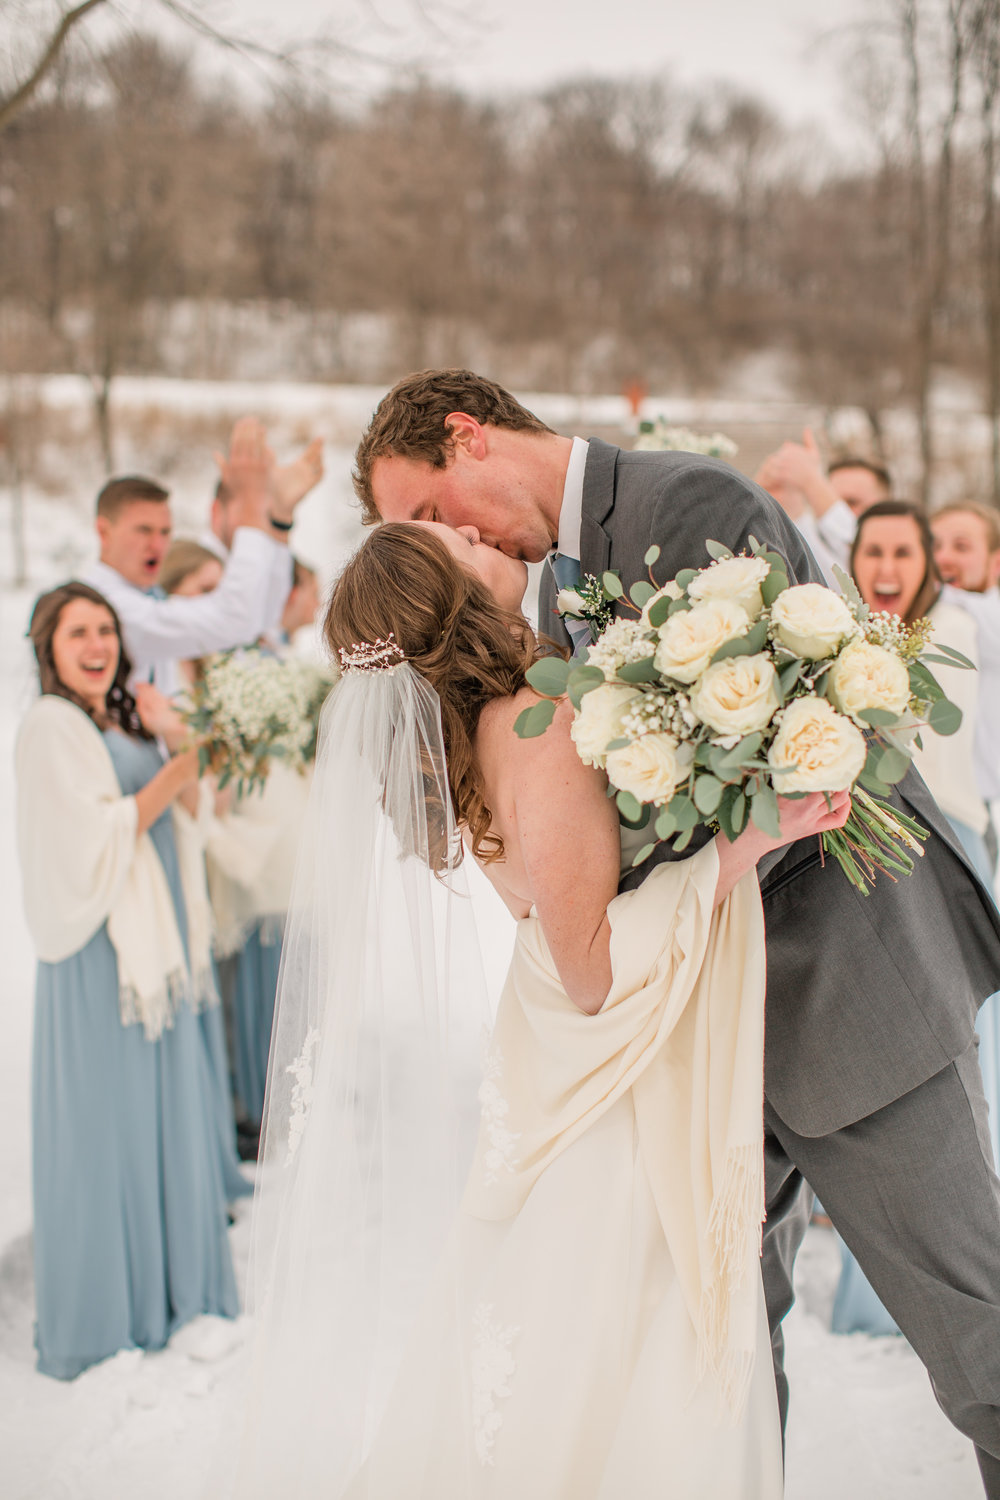 5 tips for your winter wedding